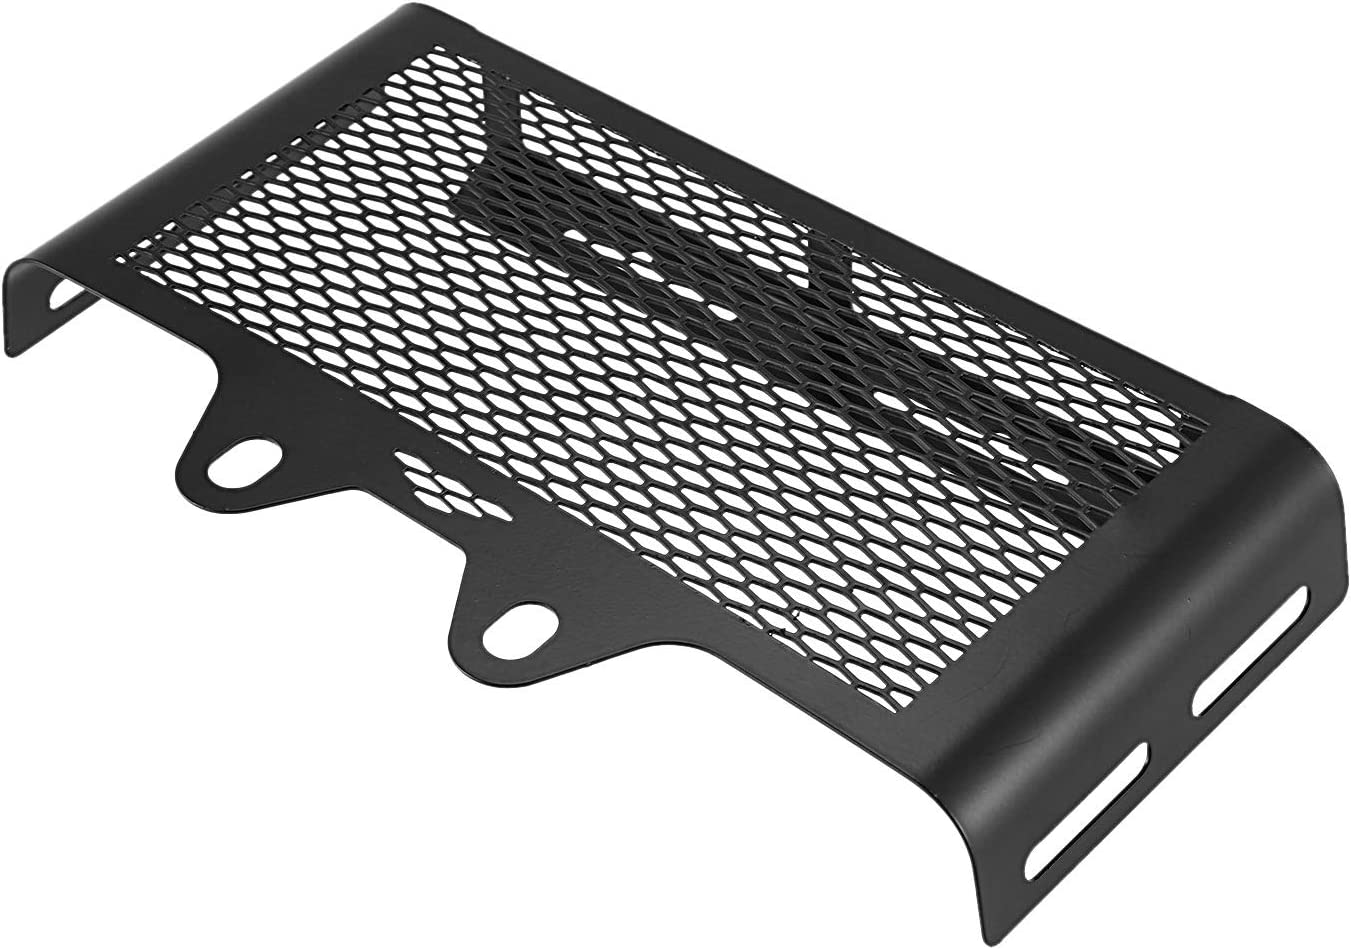 Moligh doll Motorcycle Grill Radiator Guard Cover Protector Grille for R Nine T R9T 2014-2019 Motorcycle Accessories Black